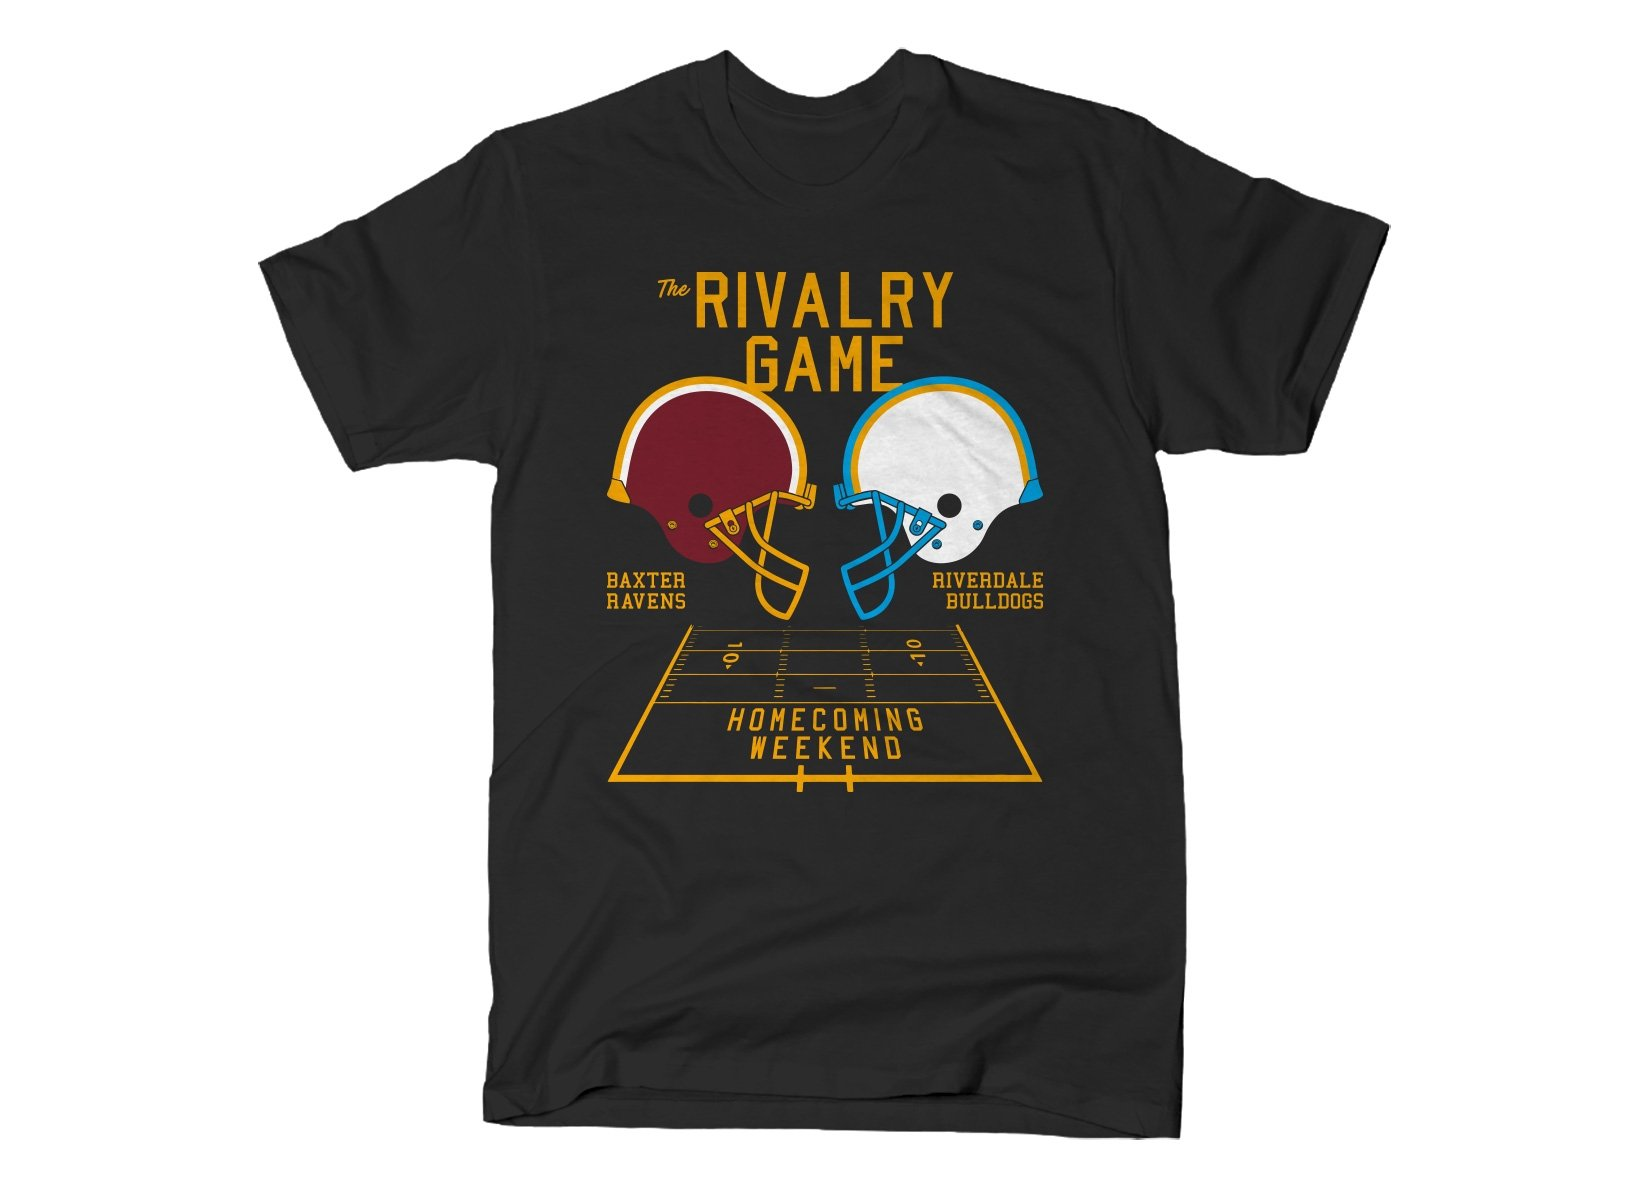 The Rivalry Game on Mens T-Shirt